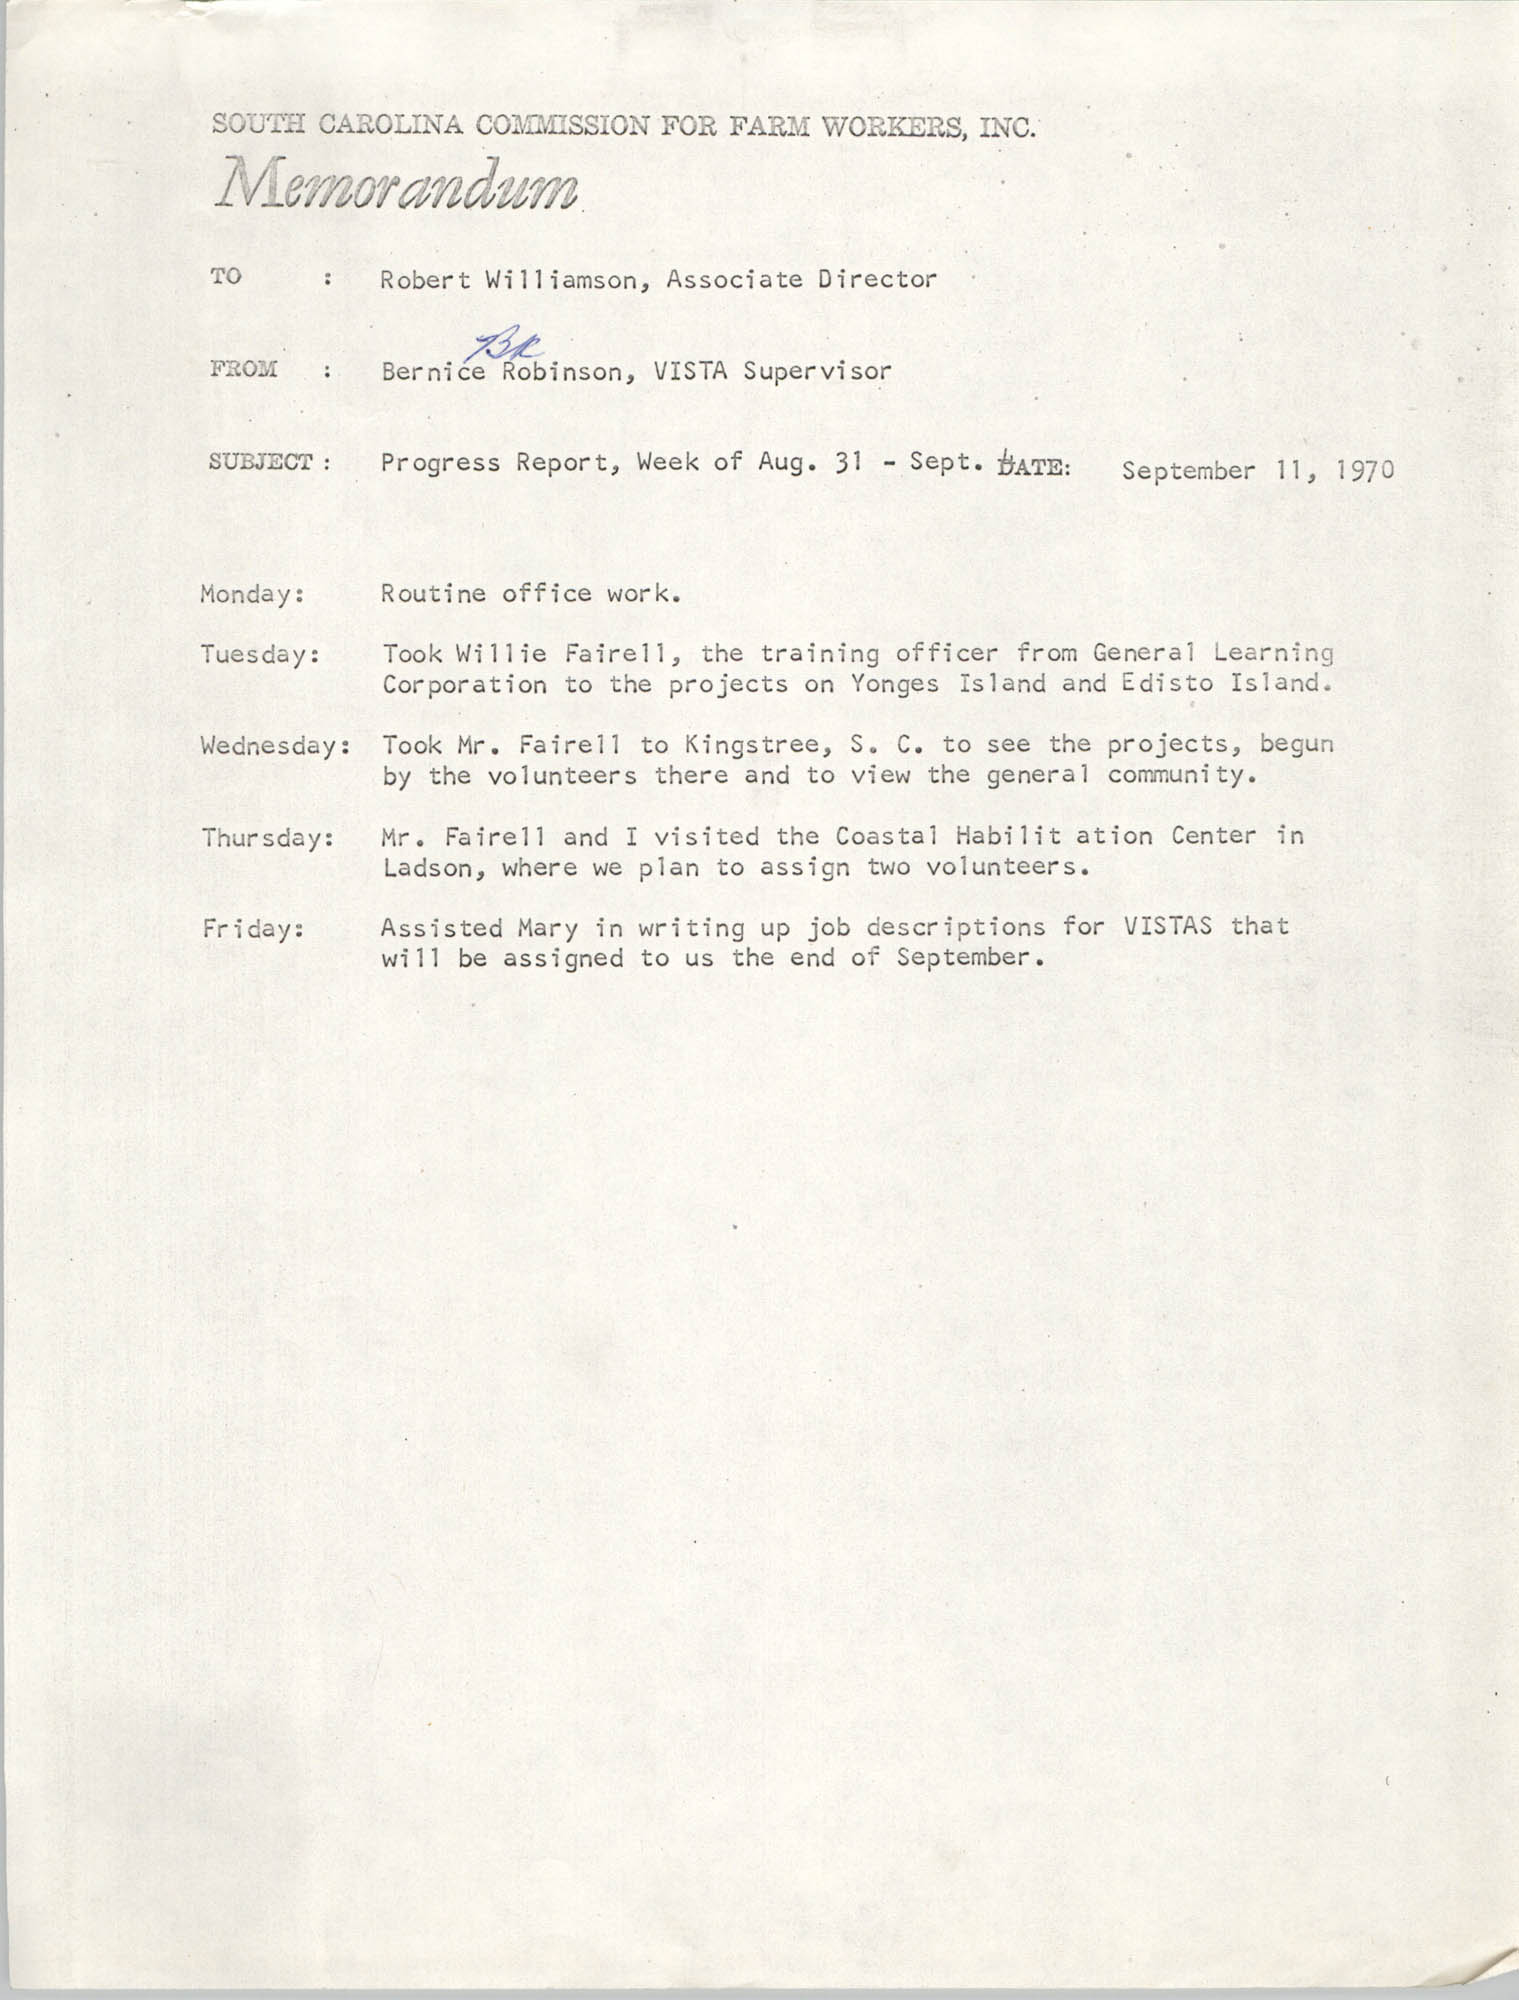 Memorandum from Bernice V. Robinson to Robert Williamson, September 11, 1970